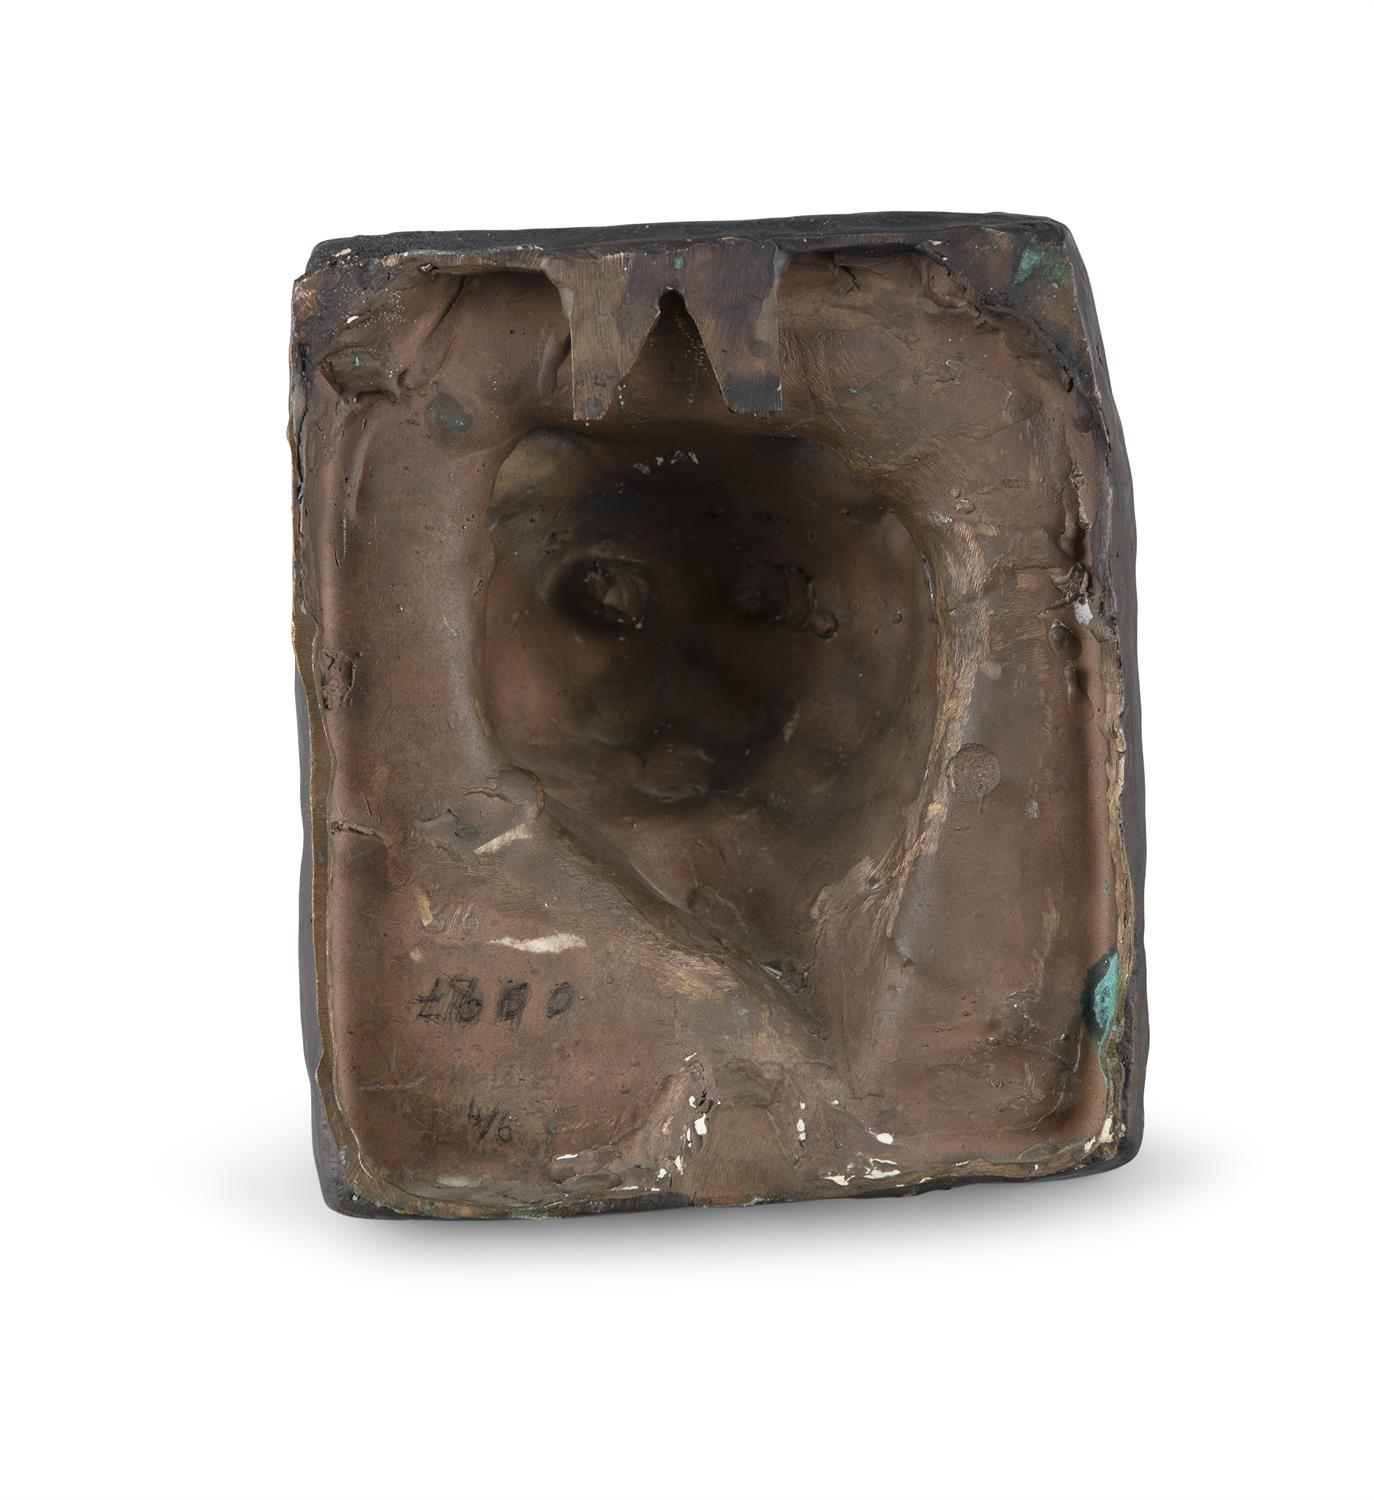 Melanie Le Brocquy HRHA (1919-2018) Cat Bronze, 17 x 14.5cm (6¾ x 5¾'') Signed and numbered 3/6 - Image 2 of 2